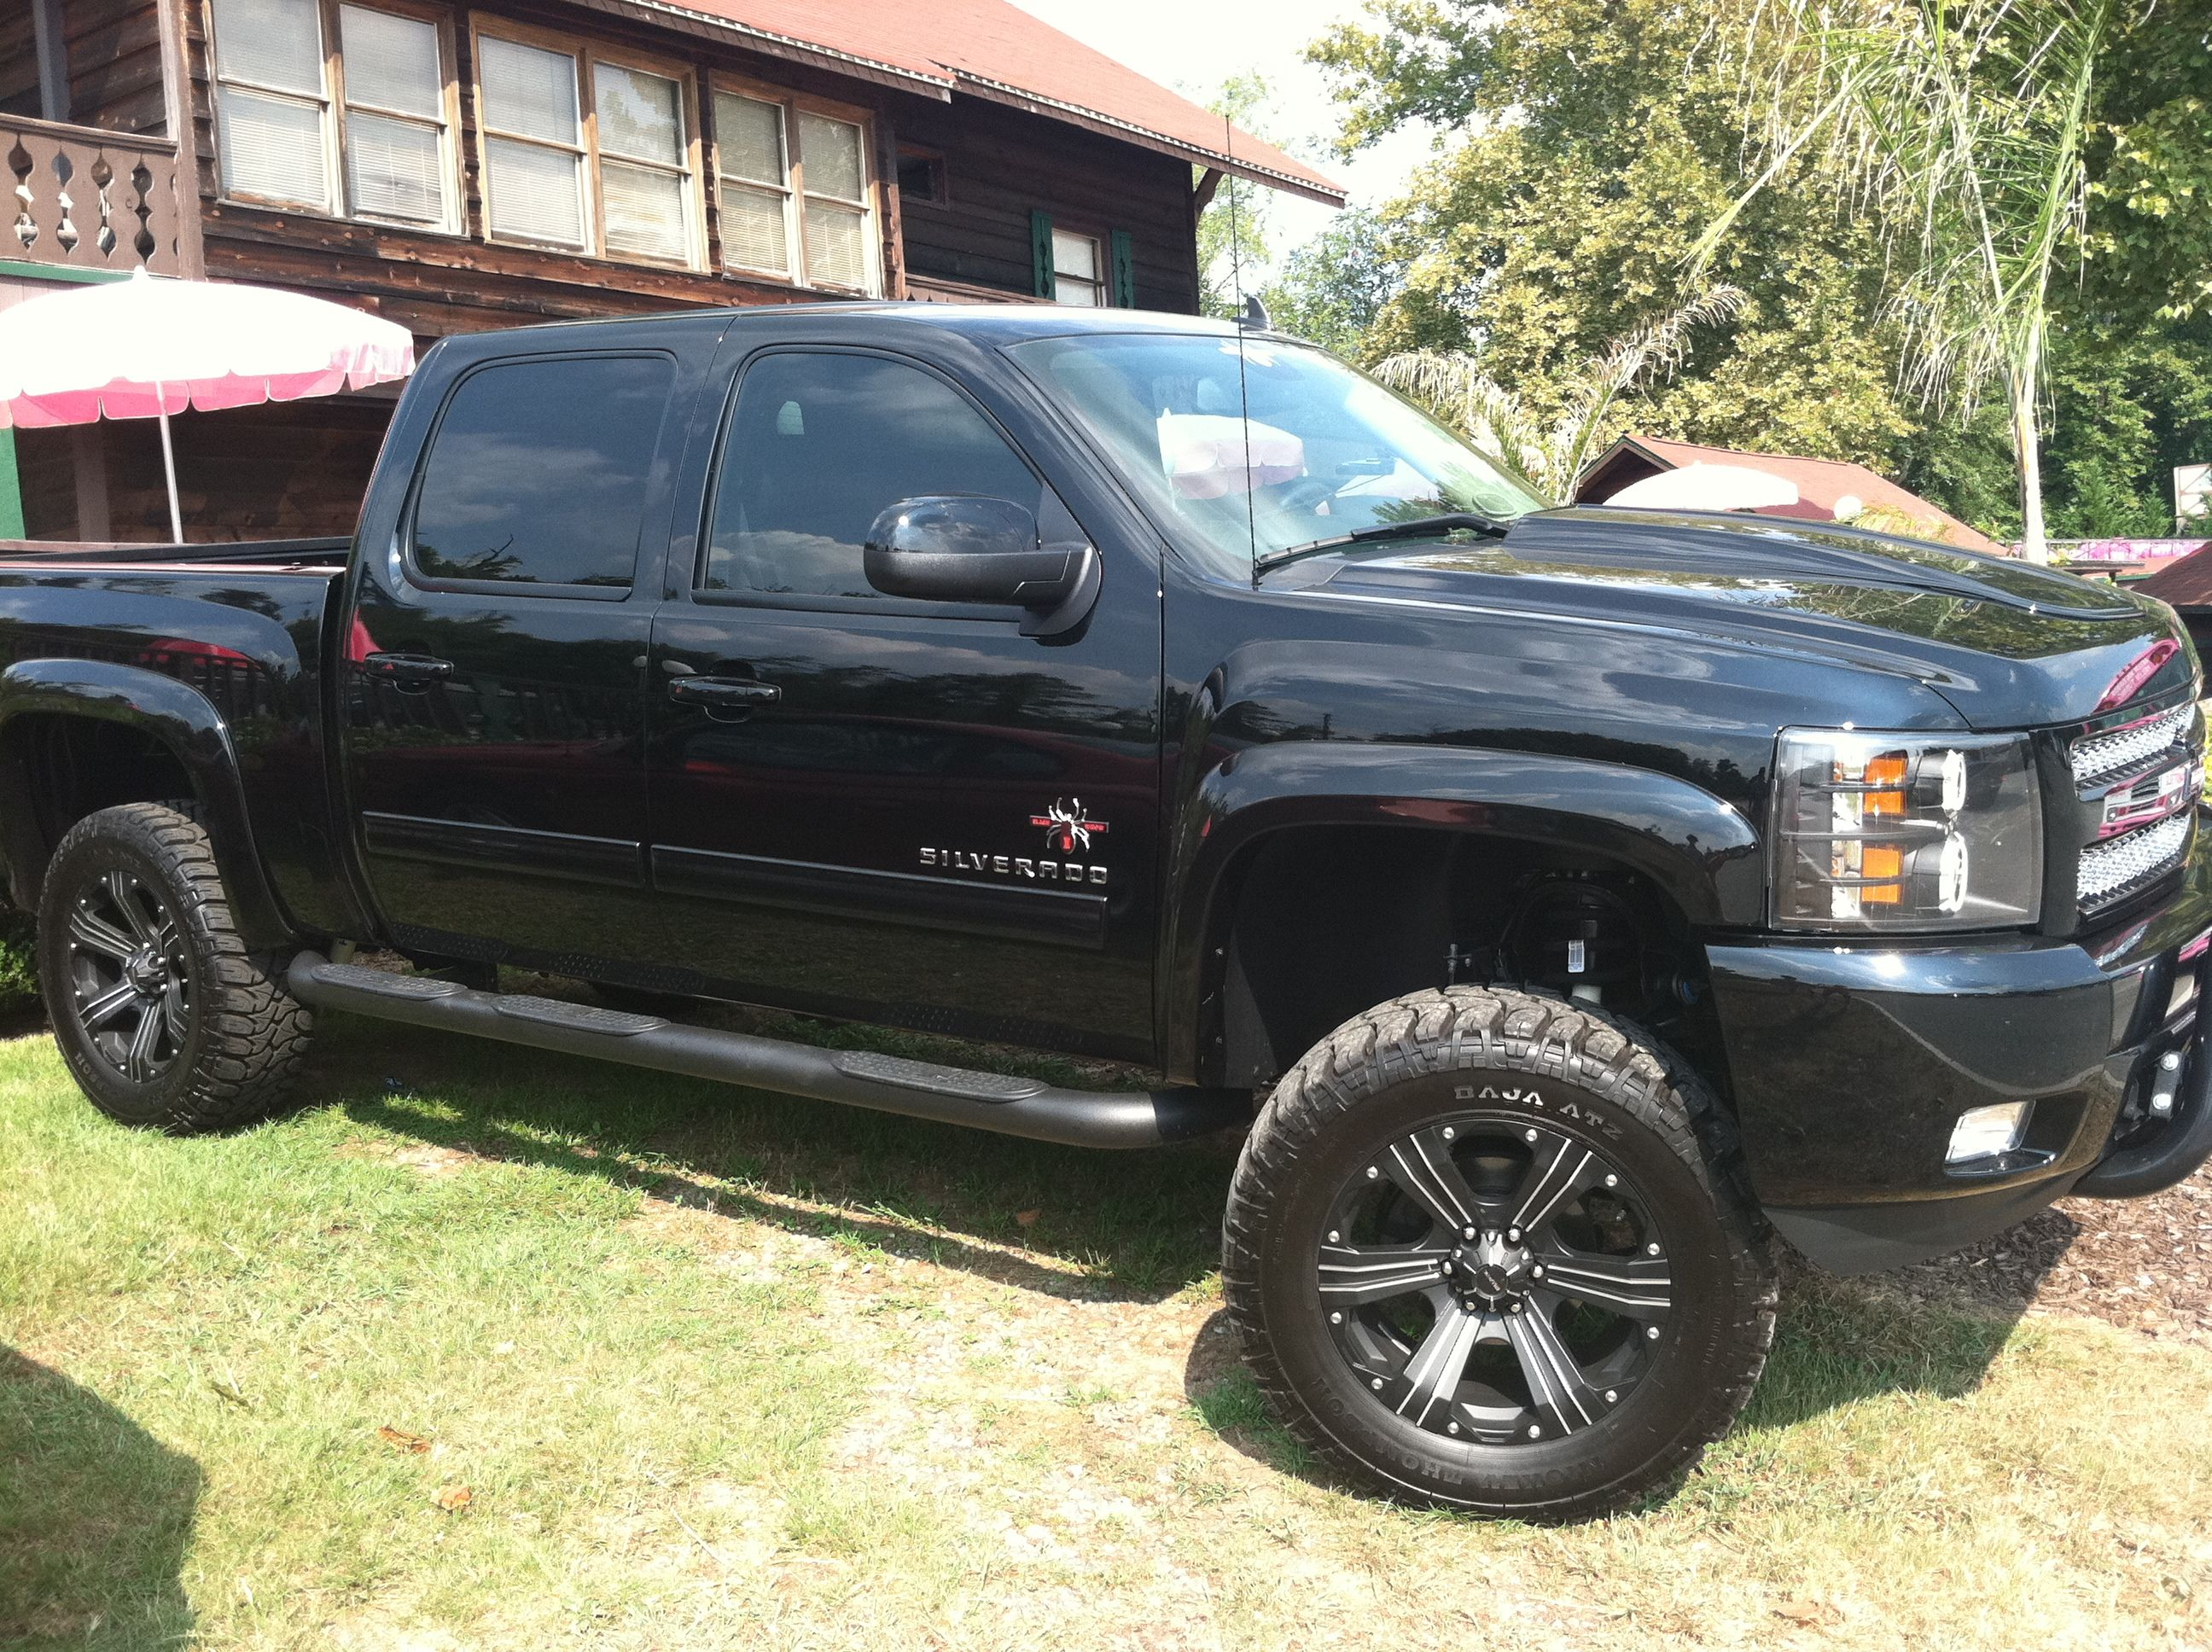 Black widow chevy silverado 1500 ltd